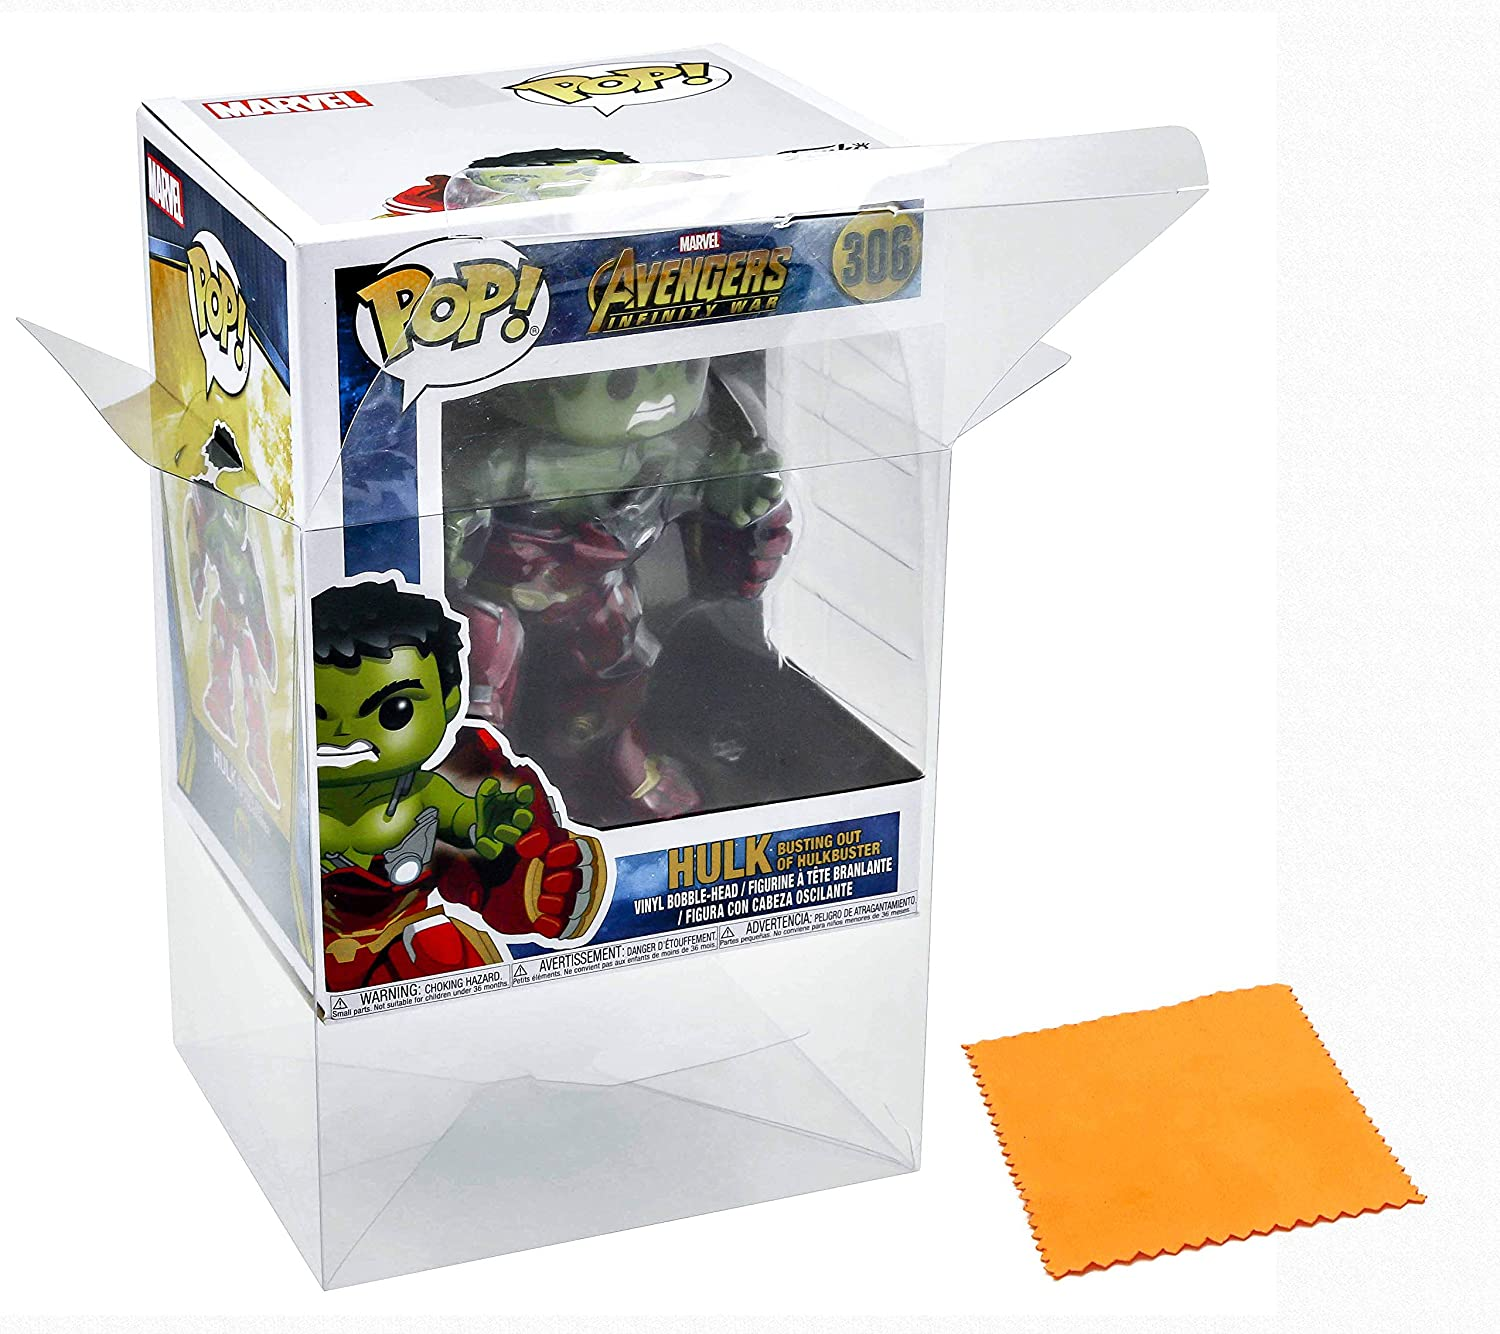 ATV Store Display Box Case / Protector For Hulk Busting out of Hulkbuster #306 AIW (2018) Funko Pop Vinyl (Figure Not Included): Amazon.es: Juguetes y ...